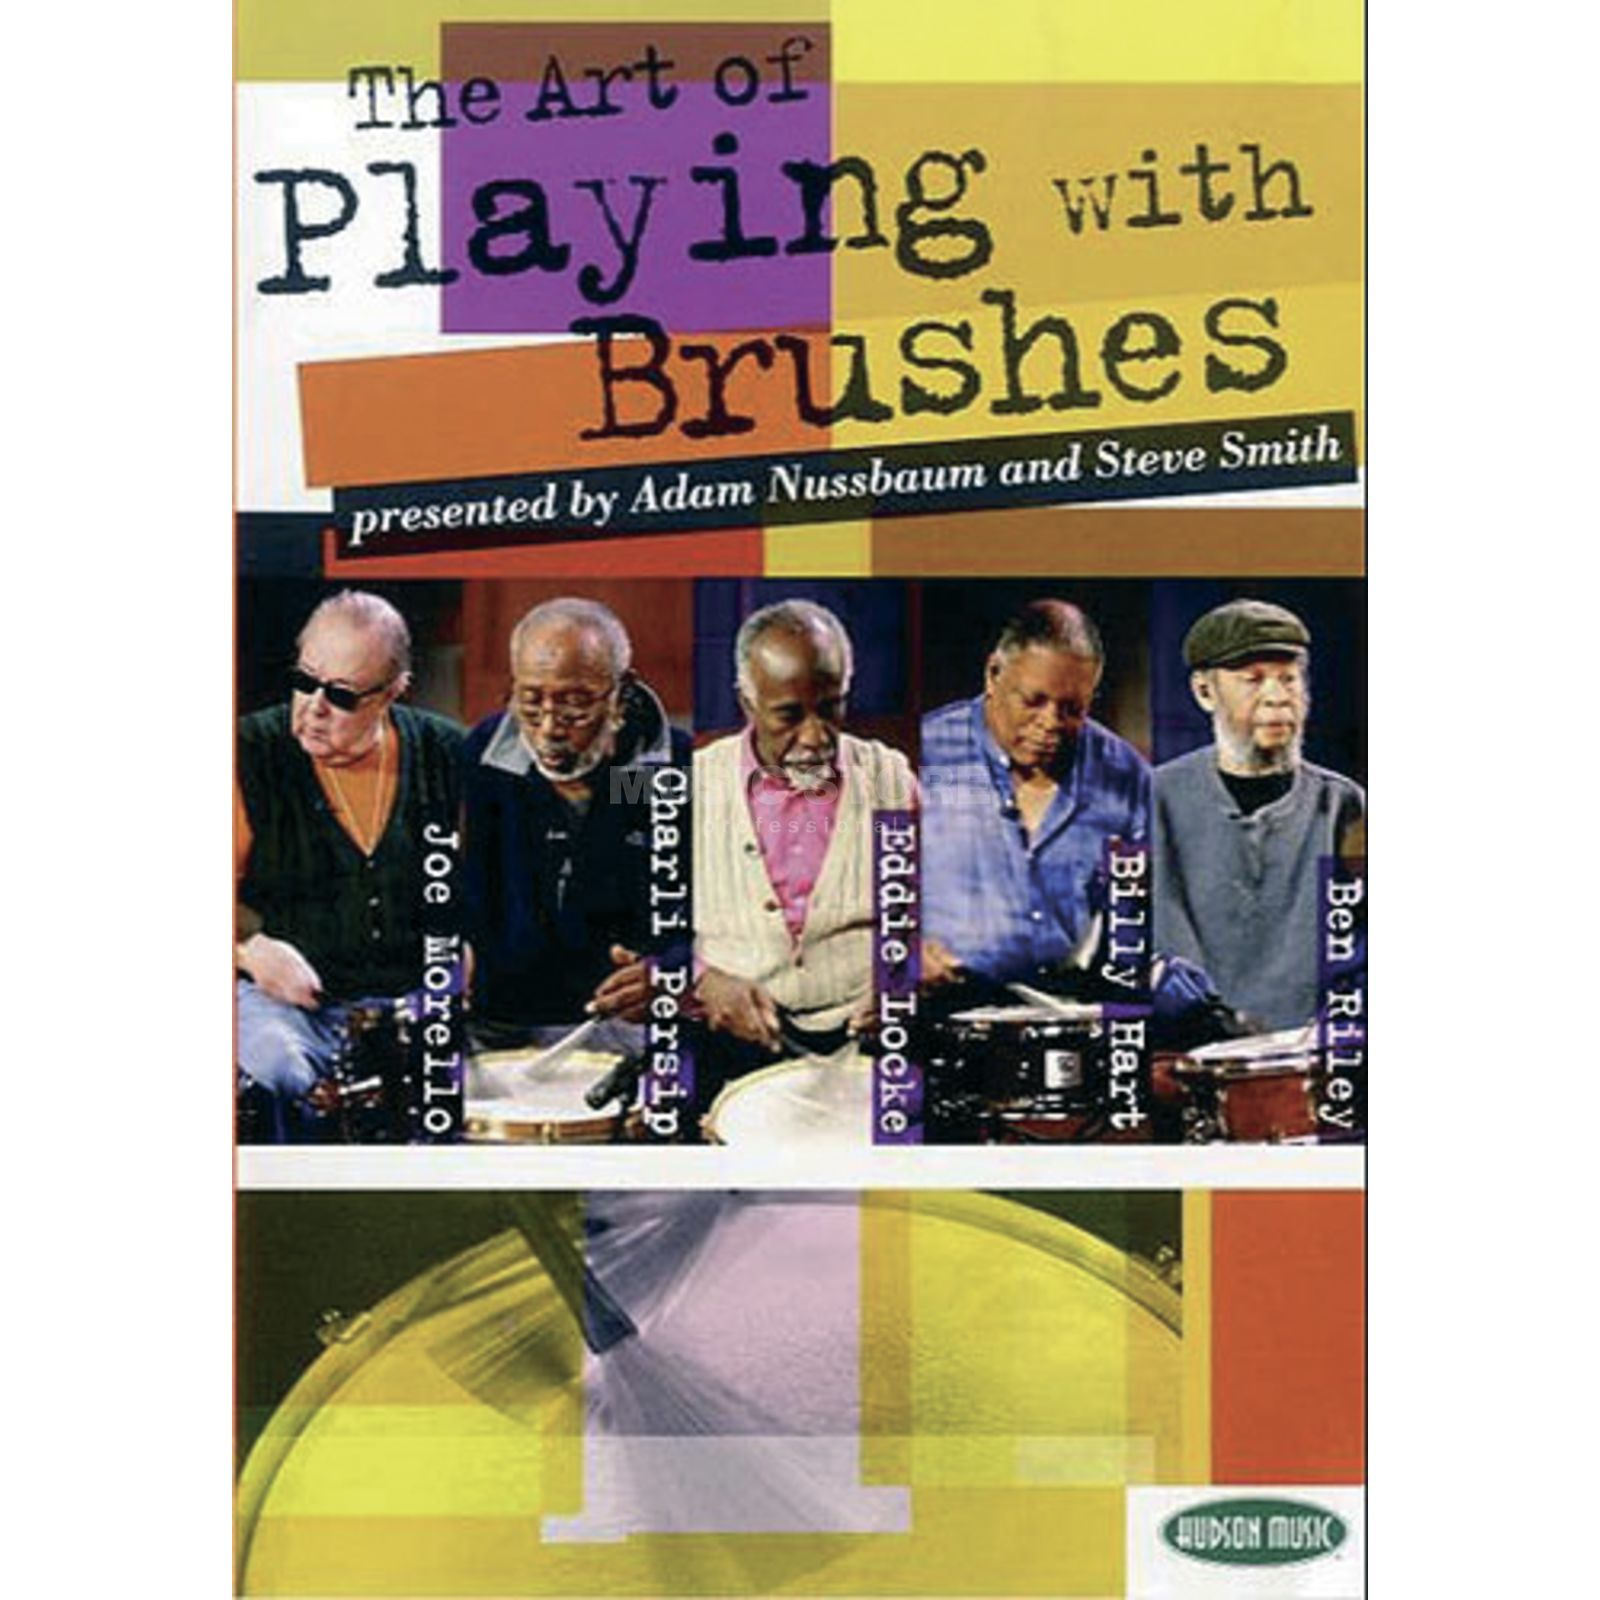 Hudson Music Art Of Playing With Brushes CD and 2 DVDs Produktbillede